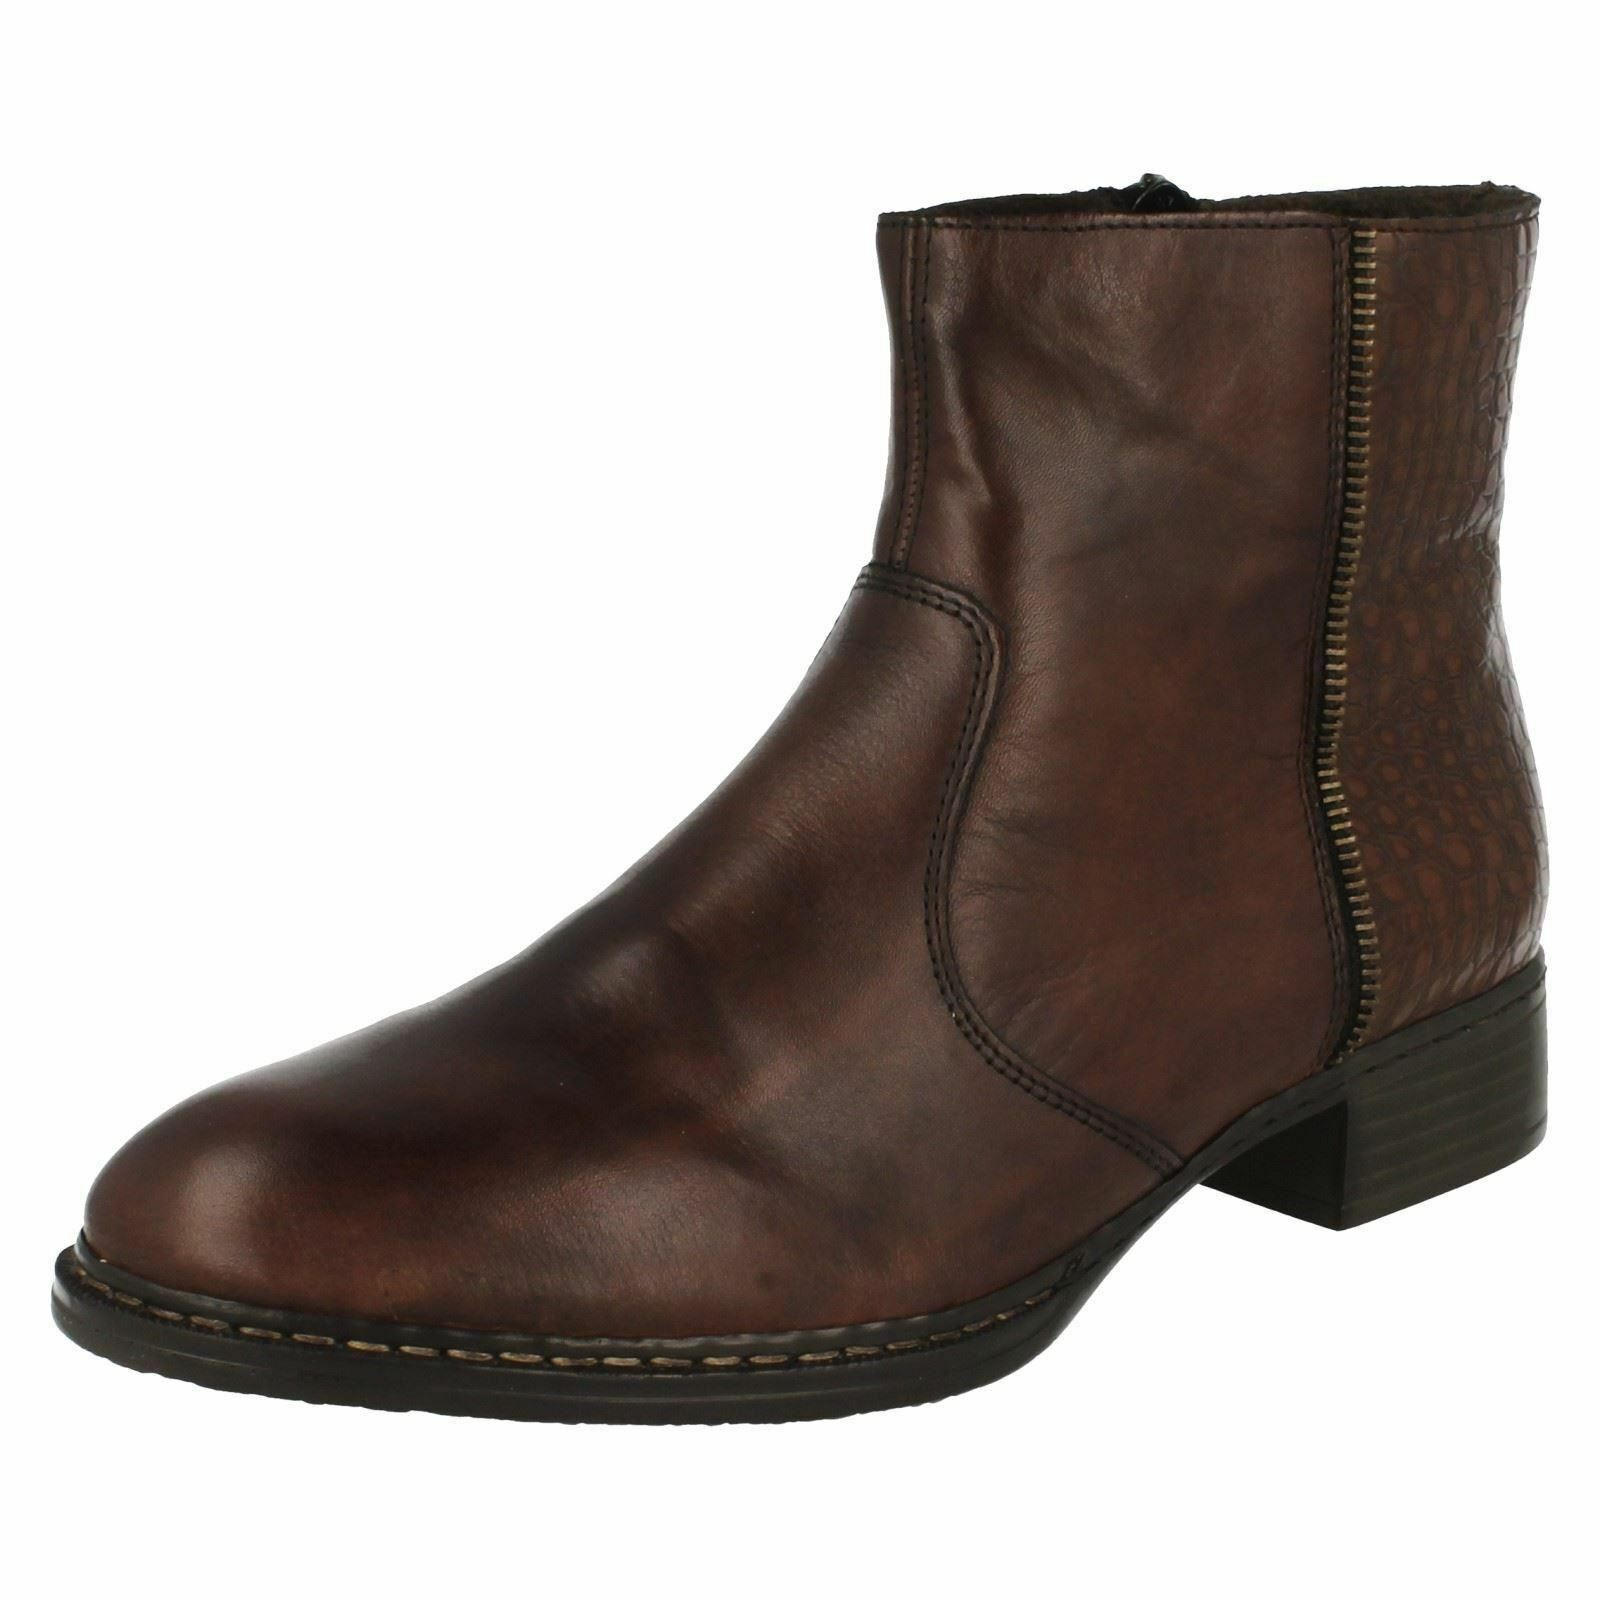 Ladies Rieker 73490 Black Or Brown Leather Leather Leather Zip Up Ankle Boots 02e069